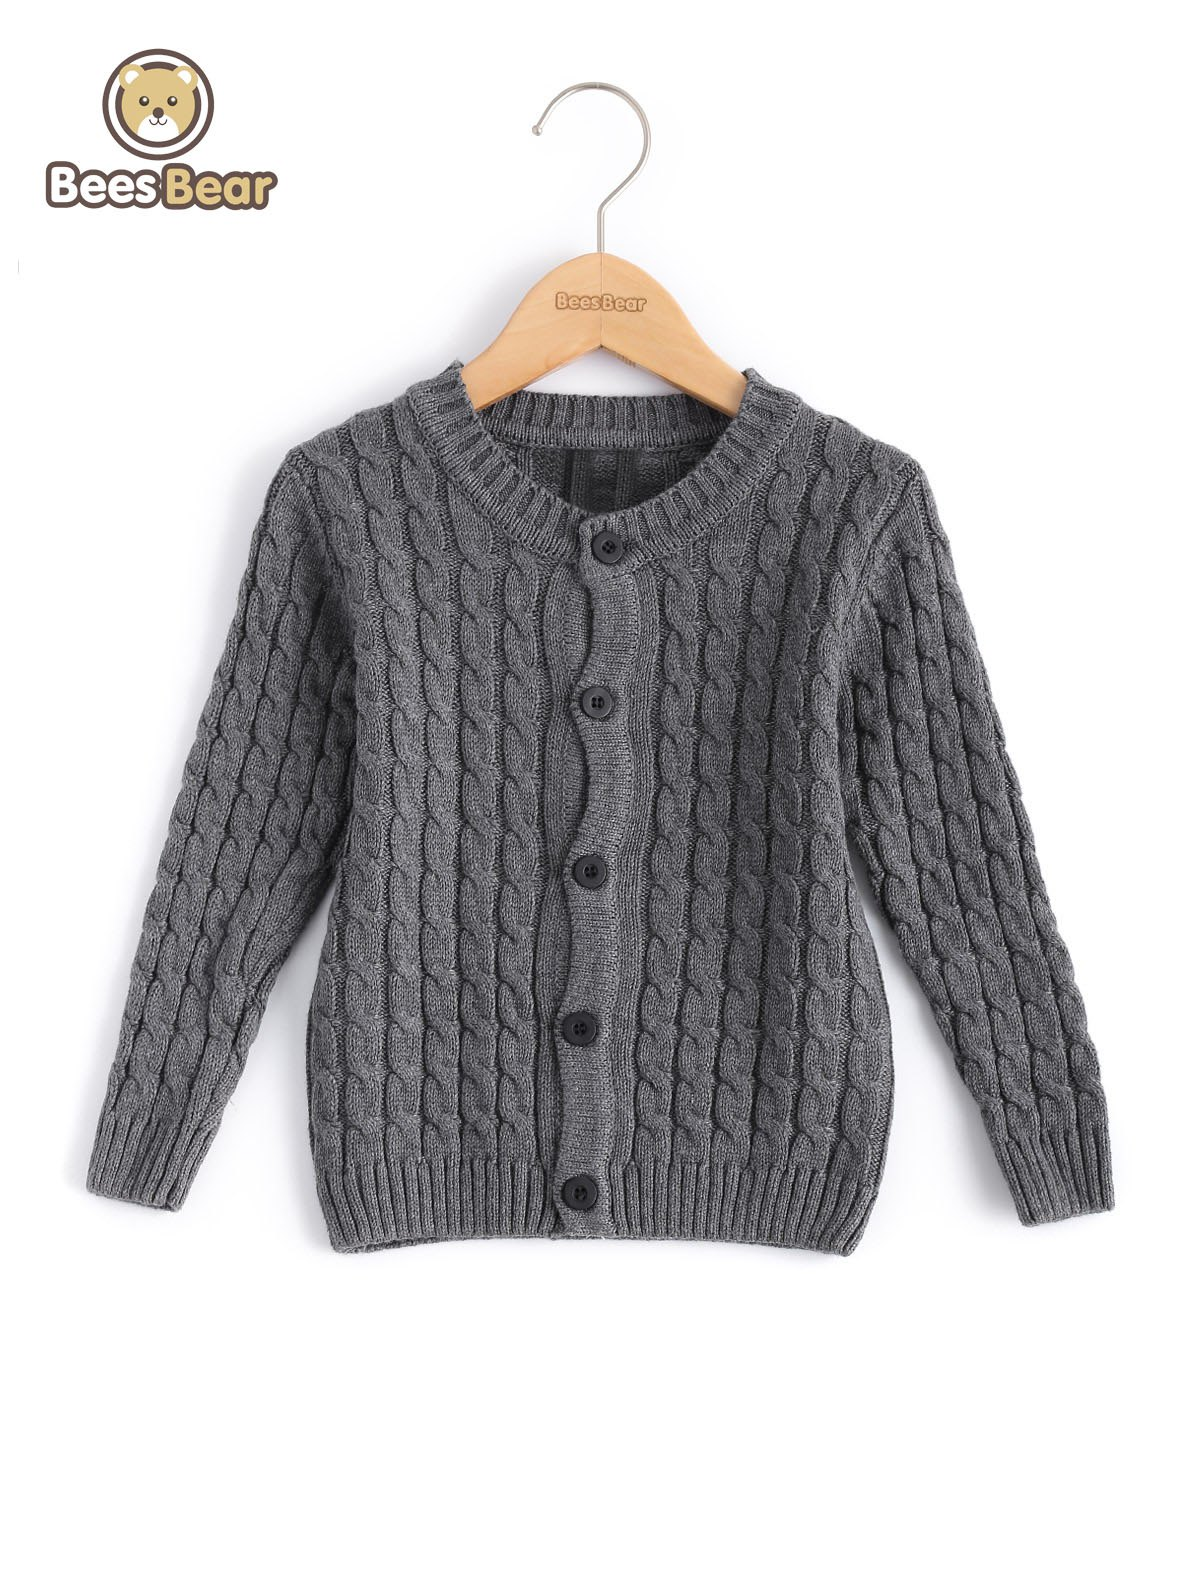 Solide Couleur Single-breasted Cardigan en maille